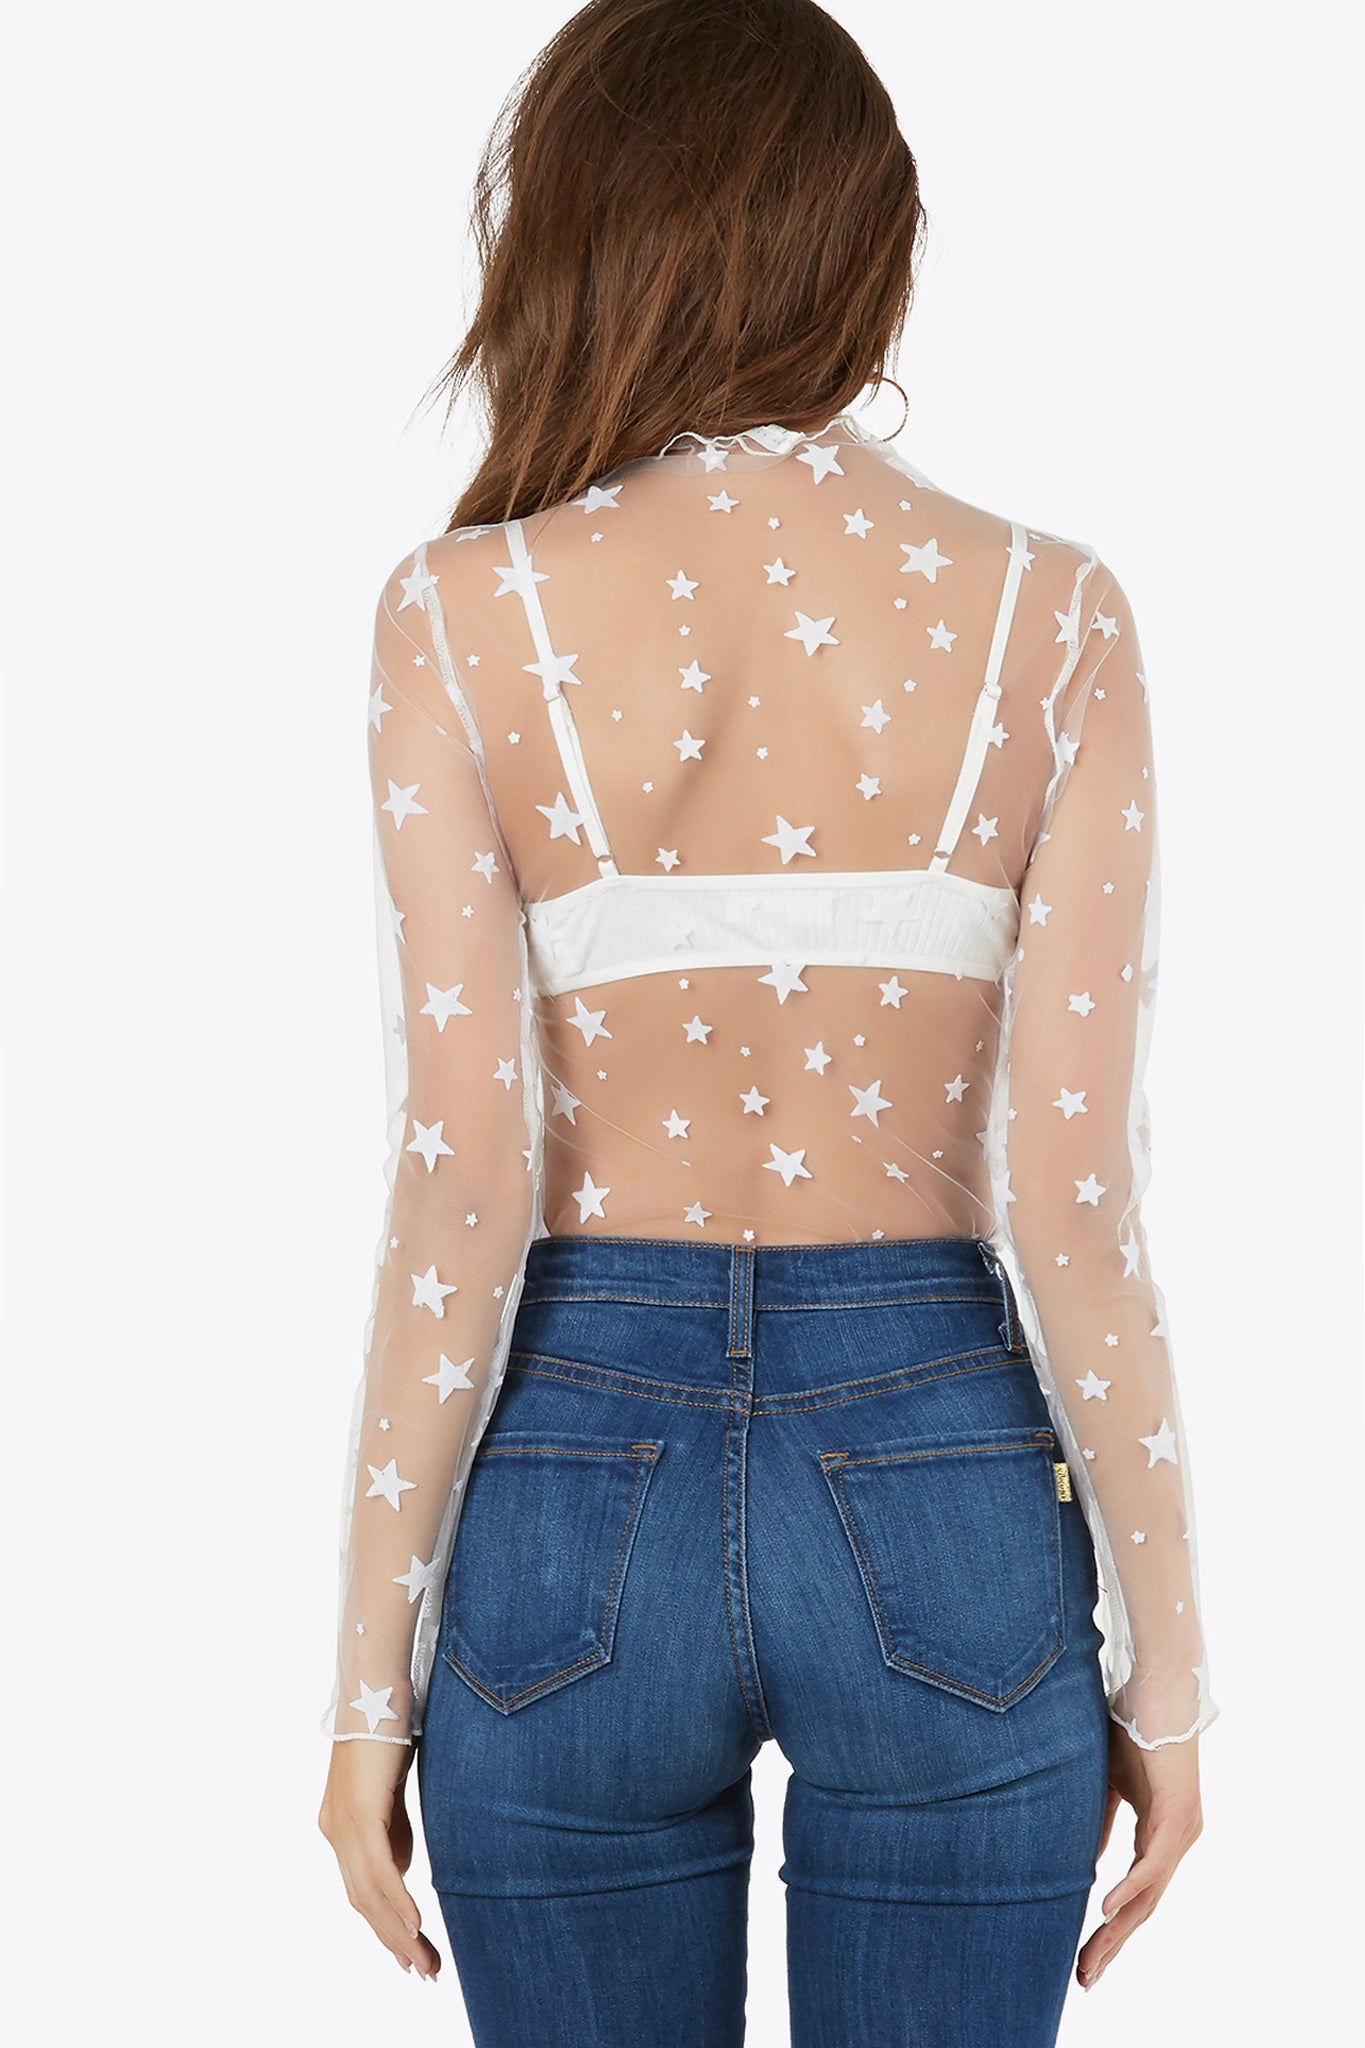 Counting Stars Bodysuit